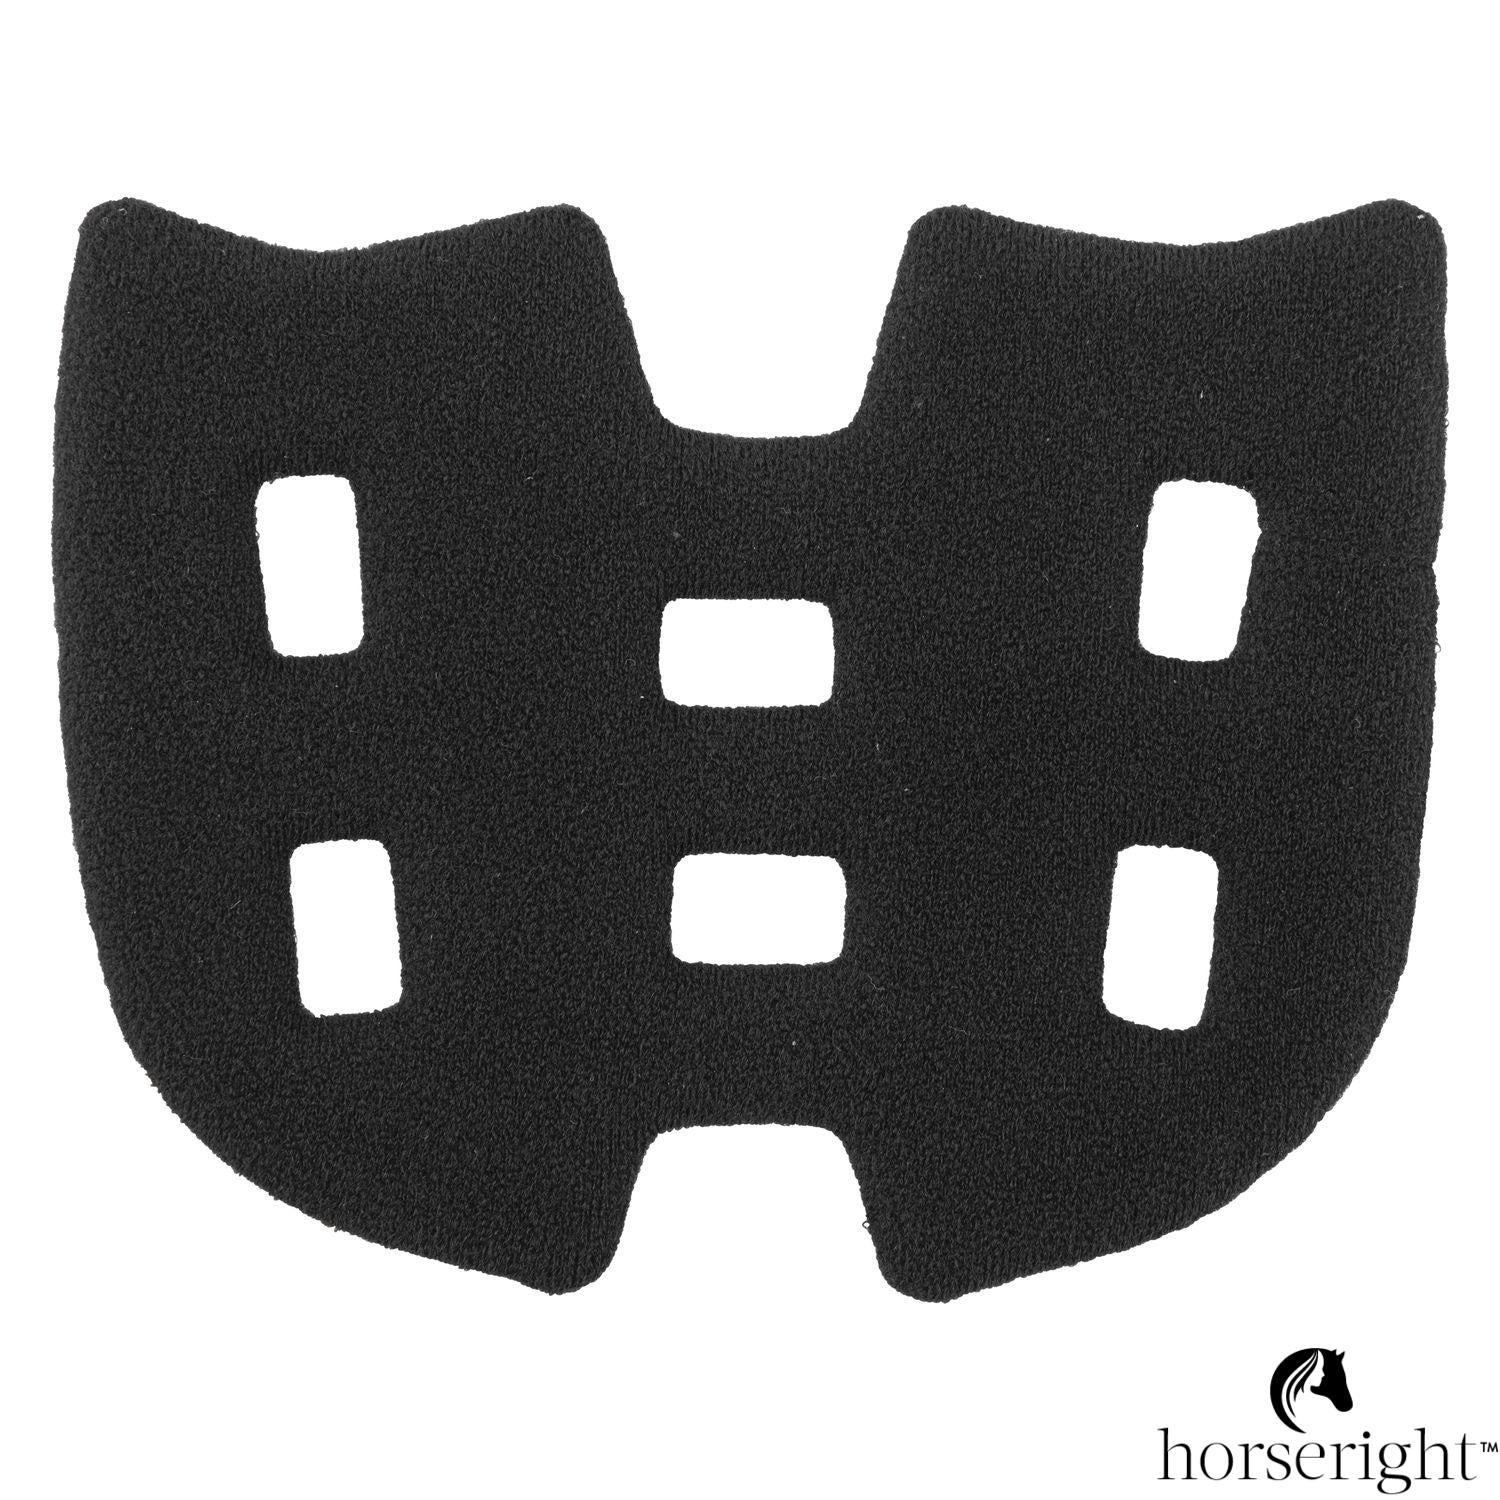 Casco Inner Pad For Mistrall Riding Helmet